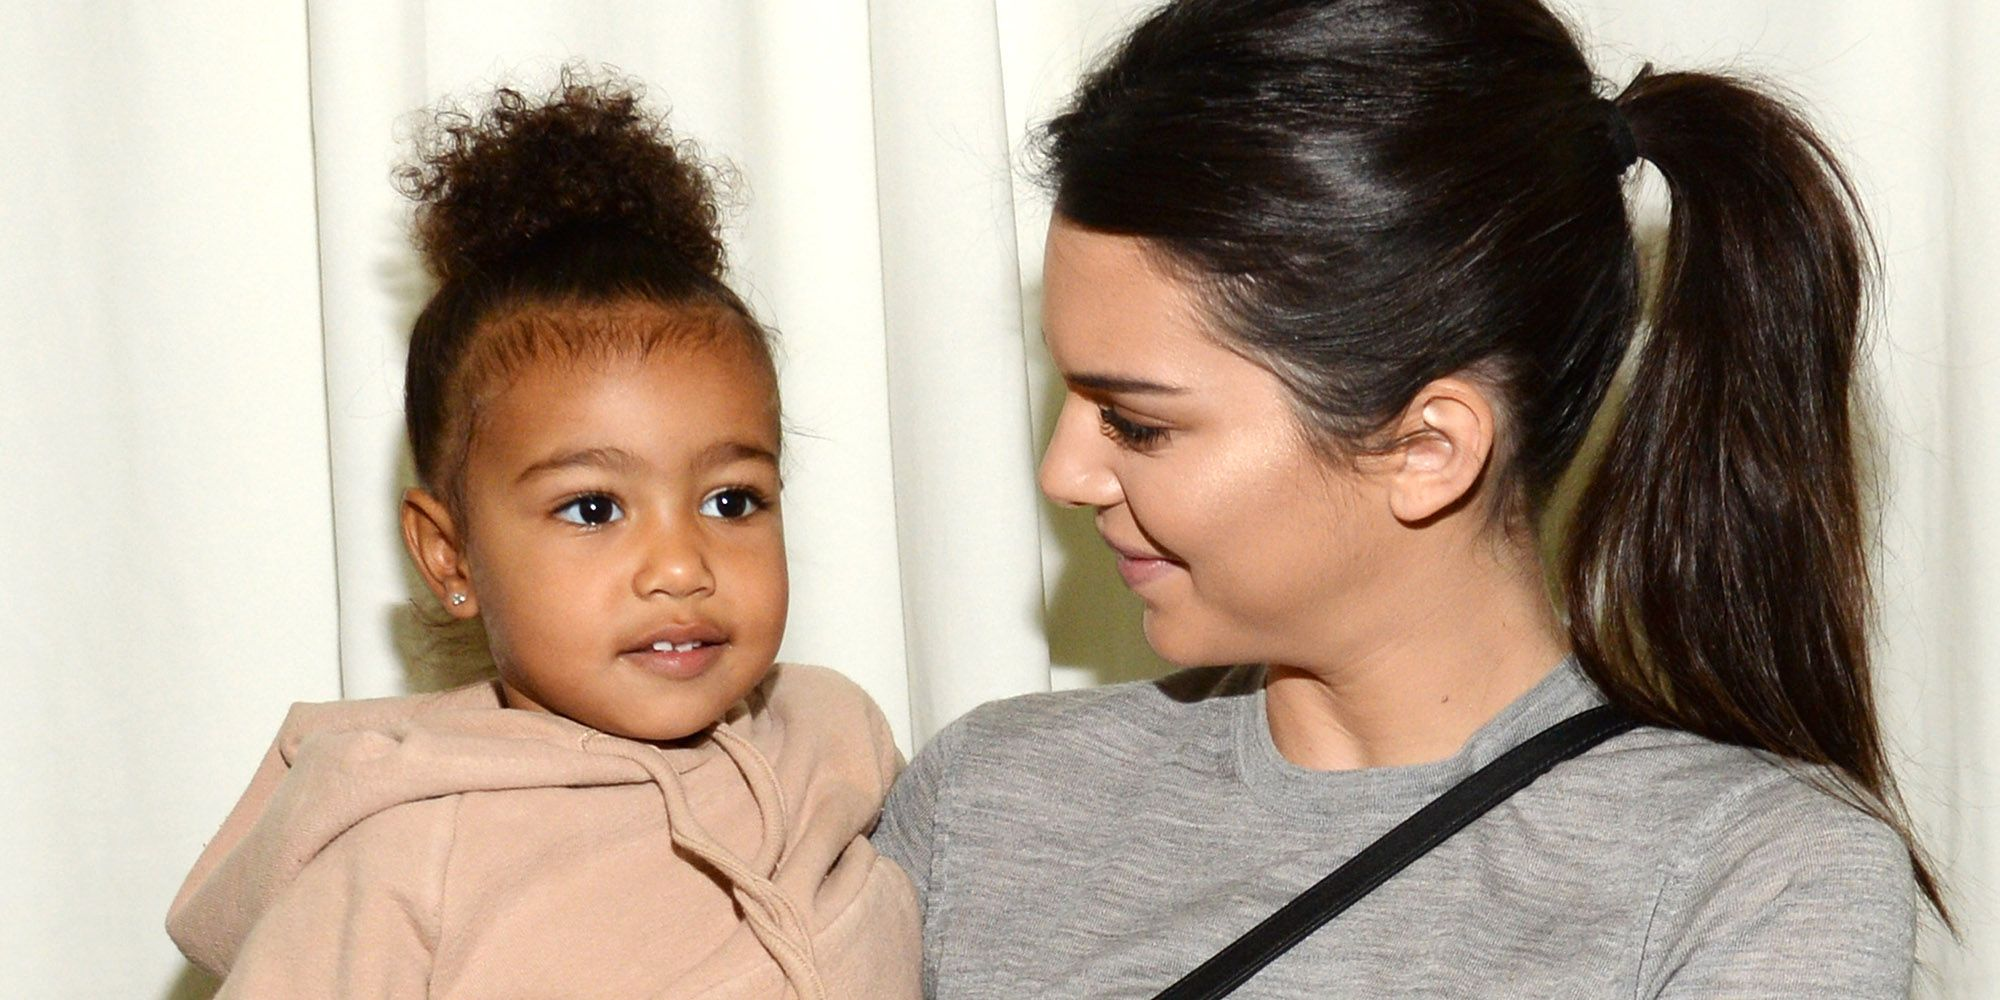 Kendall Jenner Gave Niece North West The Most Creative Birthday Gift